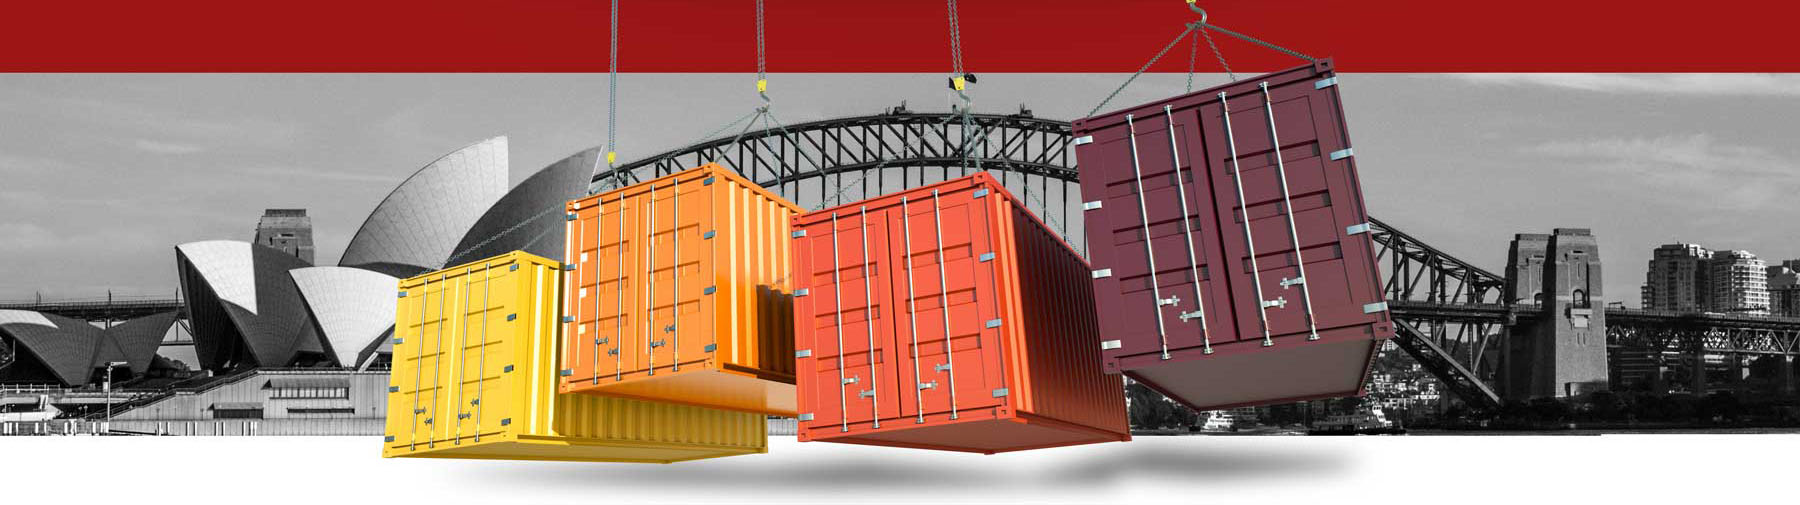 Shipping containers on chains in Sydney